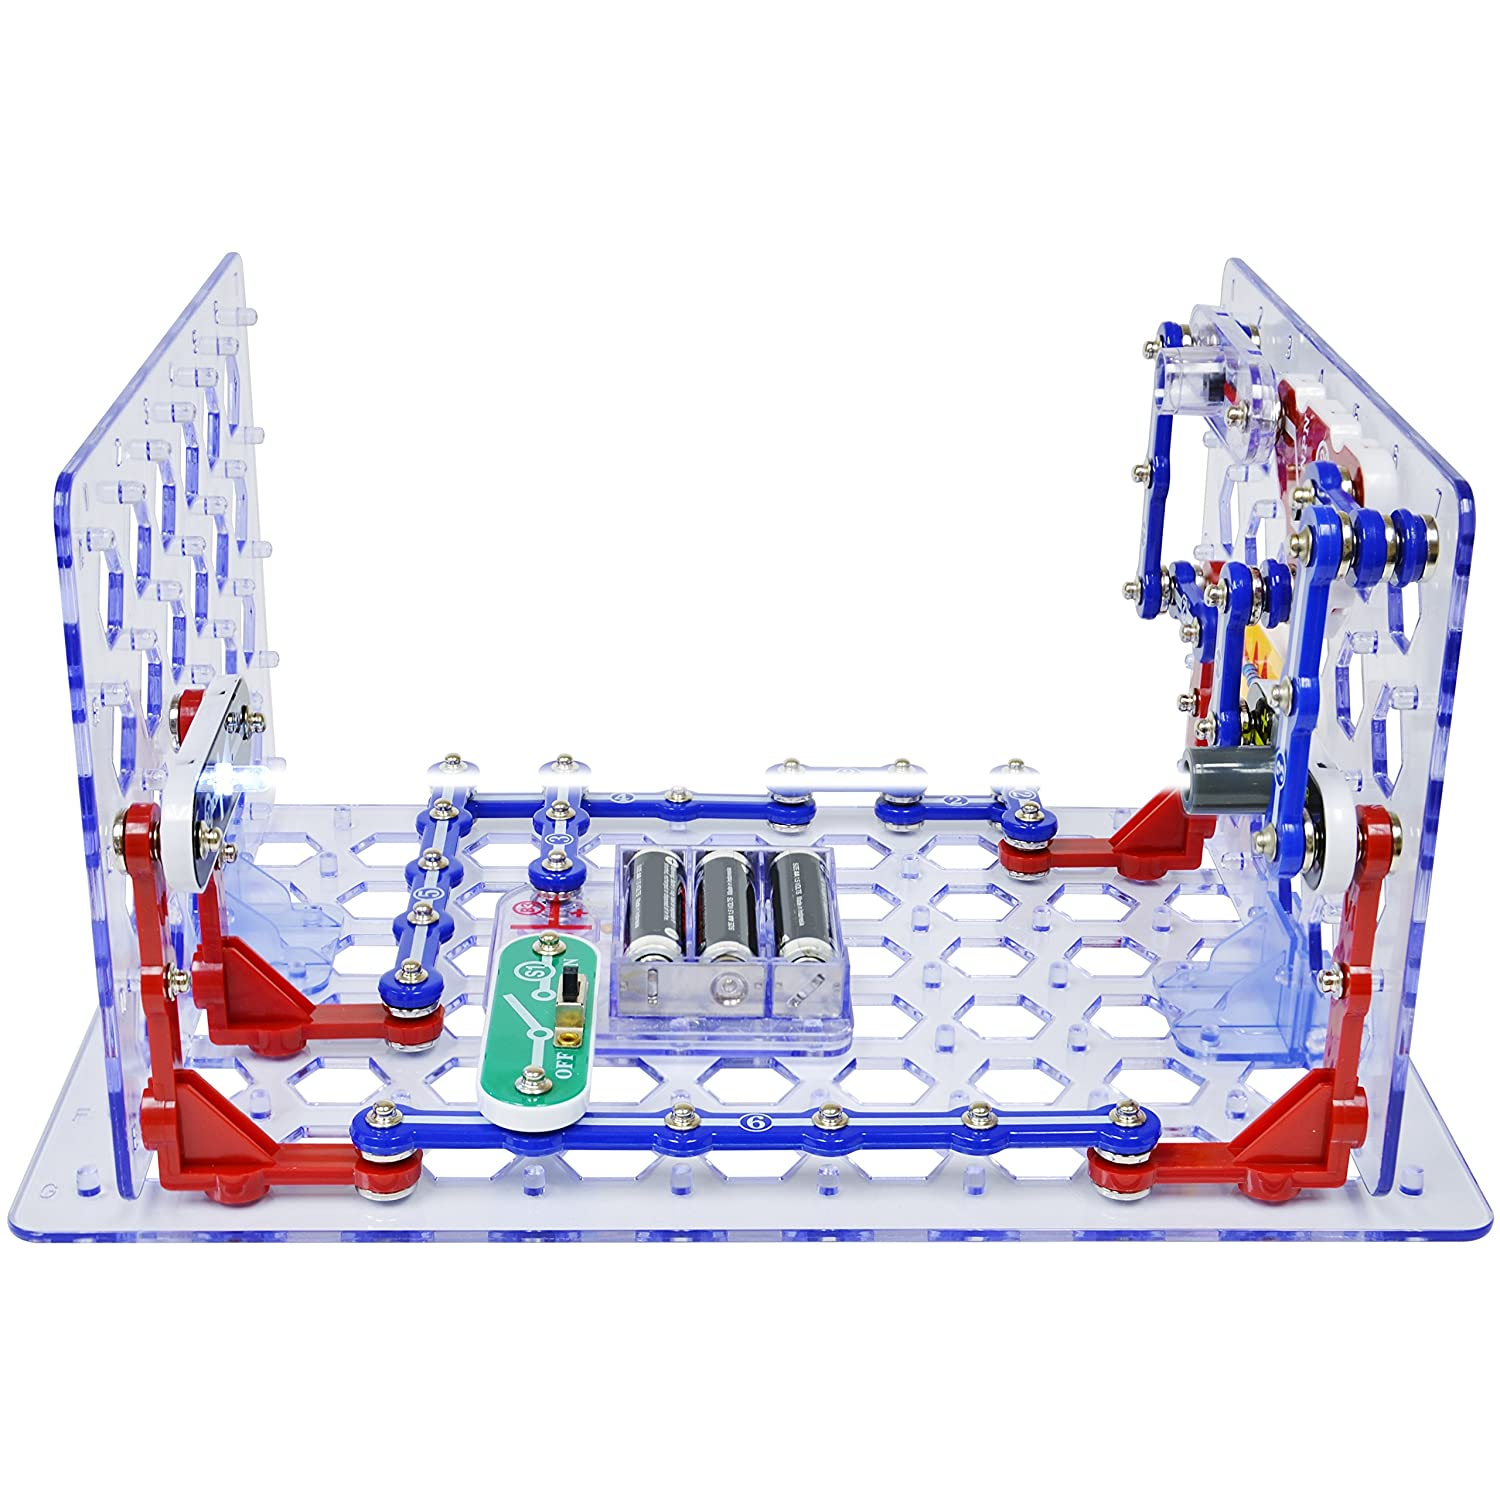 Snap Circuits 3d Illumination Electronics Exploration Elenco Pro Sc500 Discovery Kit Science Over 150 Stem Projects 4 Color Project Manual 50 Modules Unlimited Fun